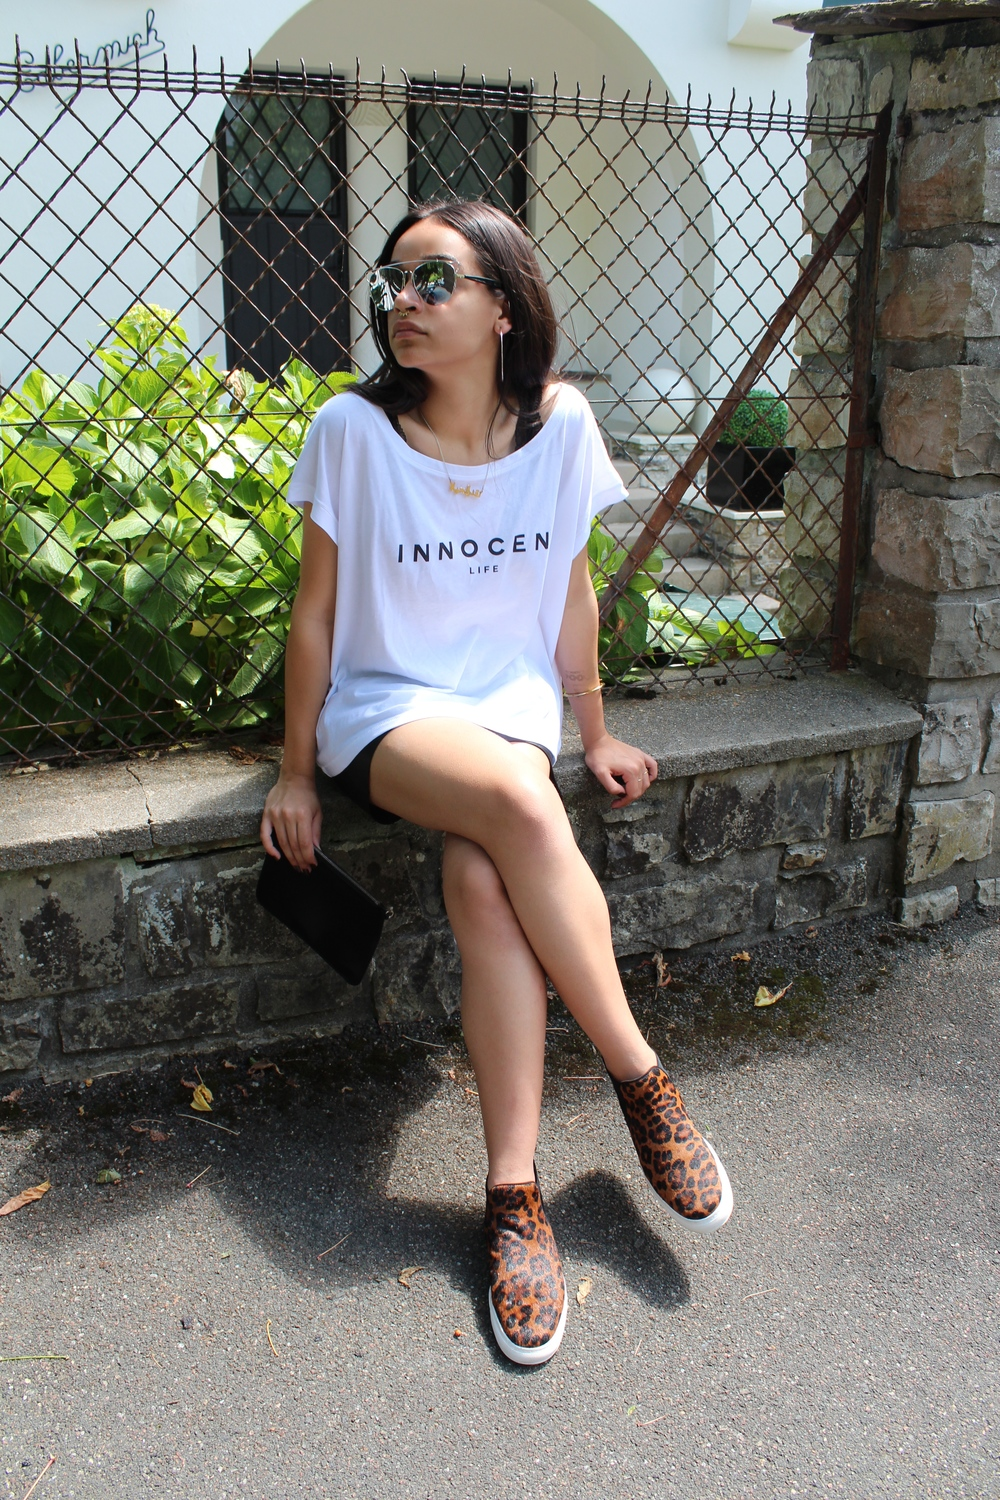 The Innocent Life t-shirt featured in a casual, sporty outfit.